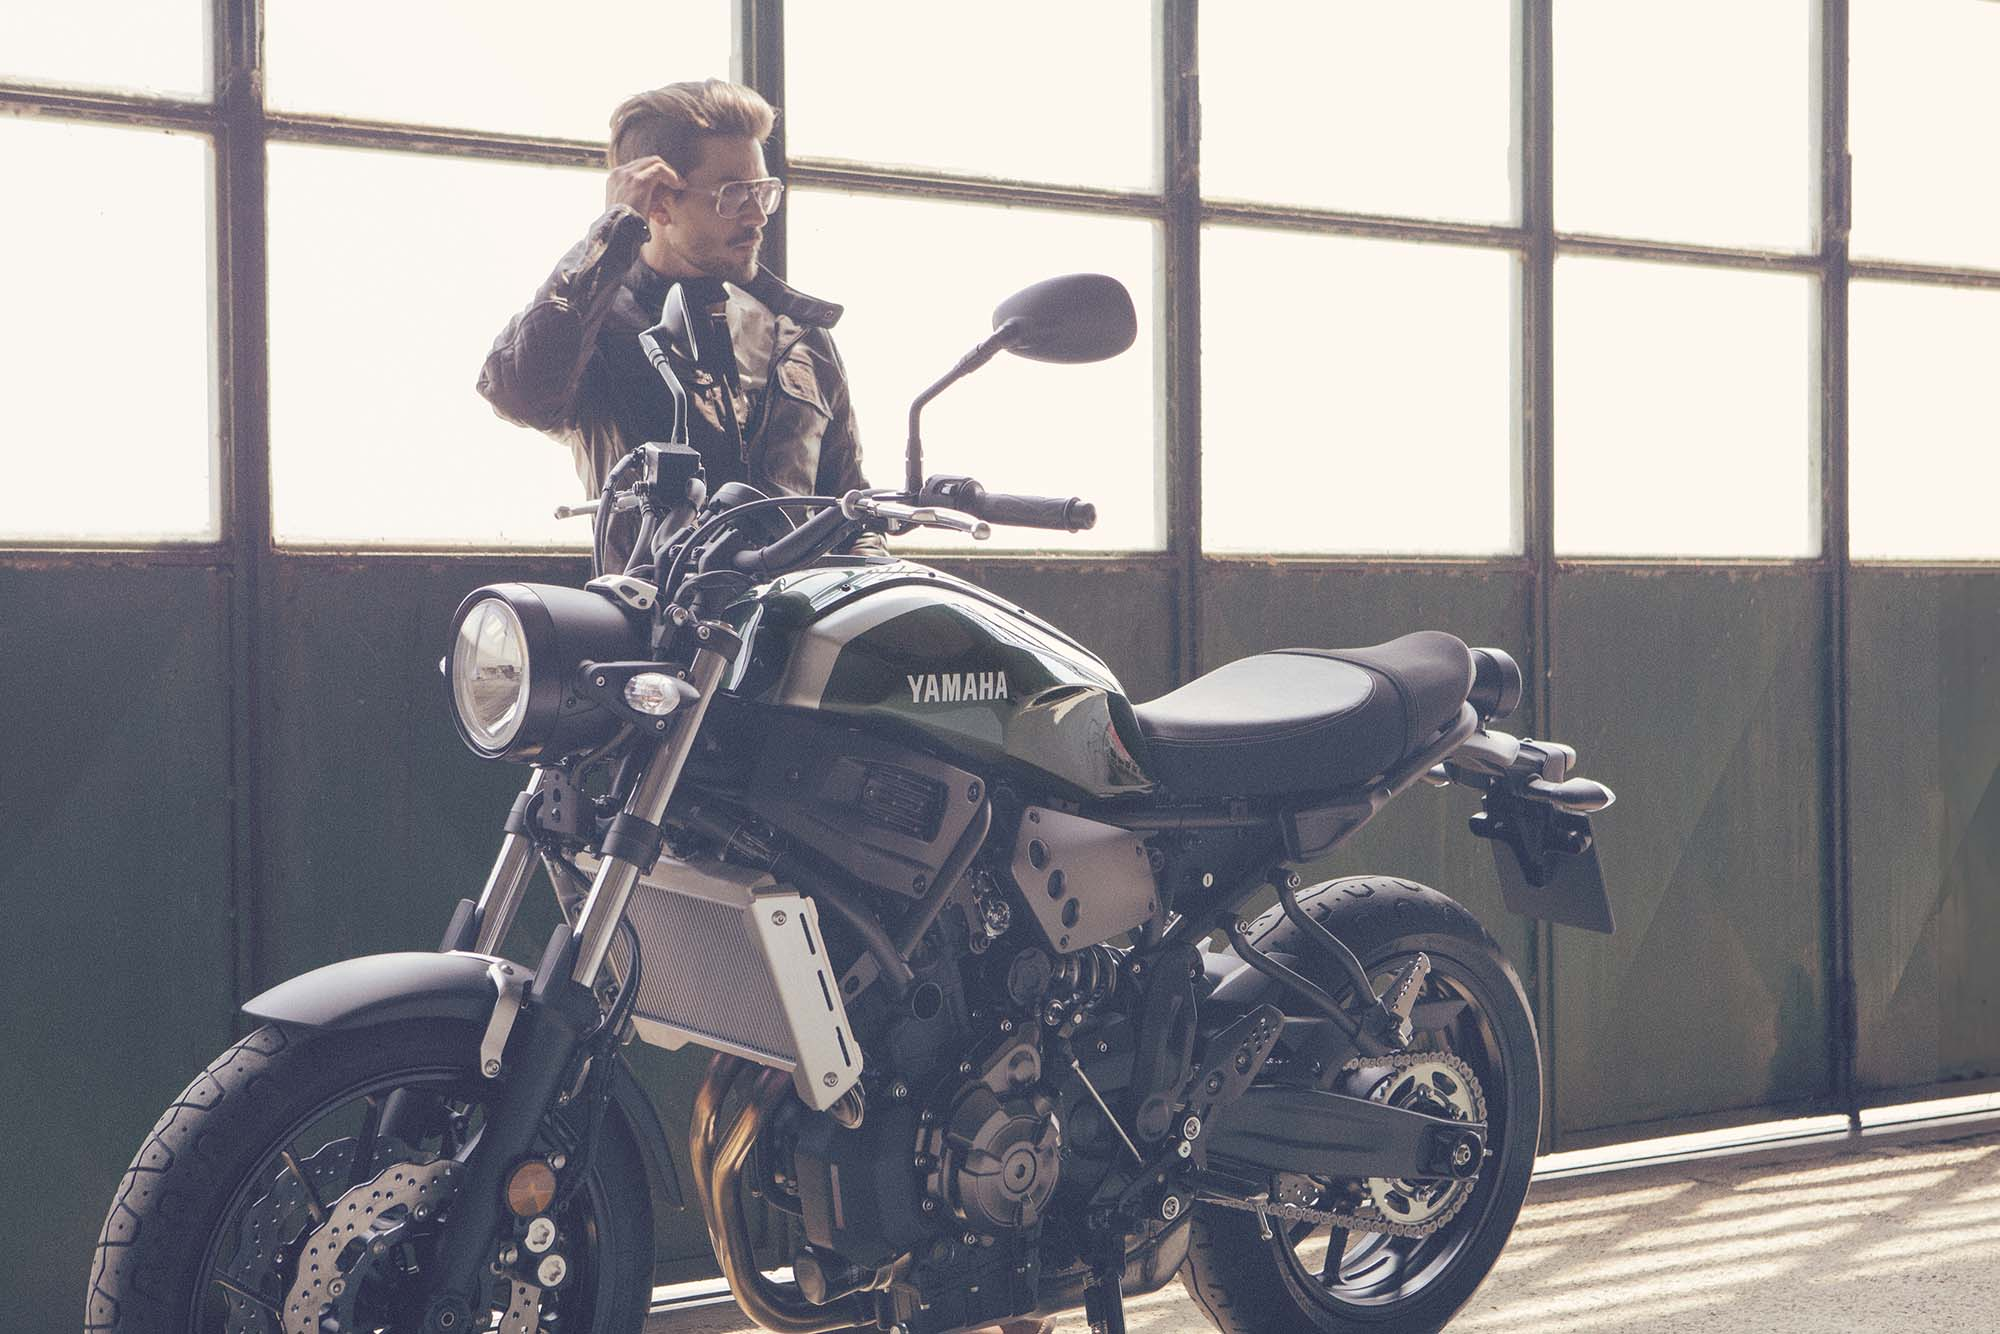 Lanesplitterjalopnik The Yamaha Xsr700 Is Ducati Scrambler Competitor We 1719558774